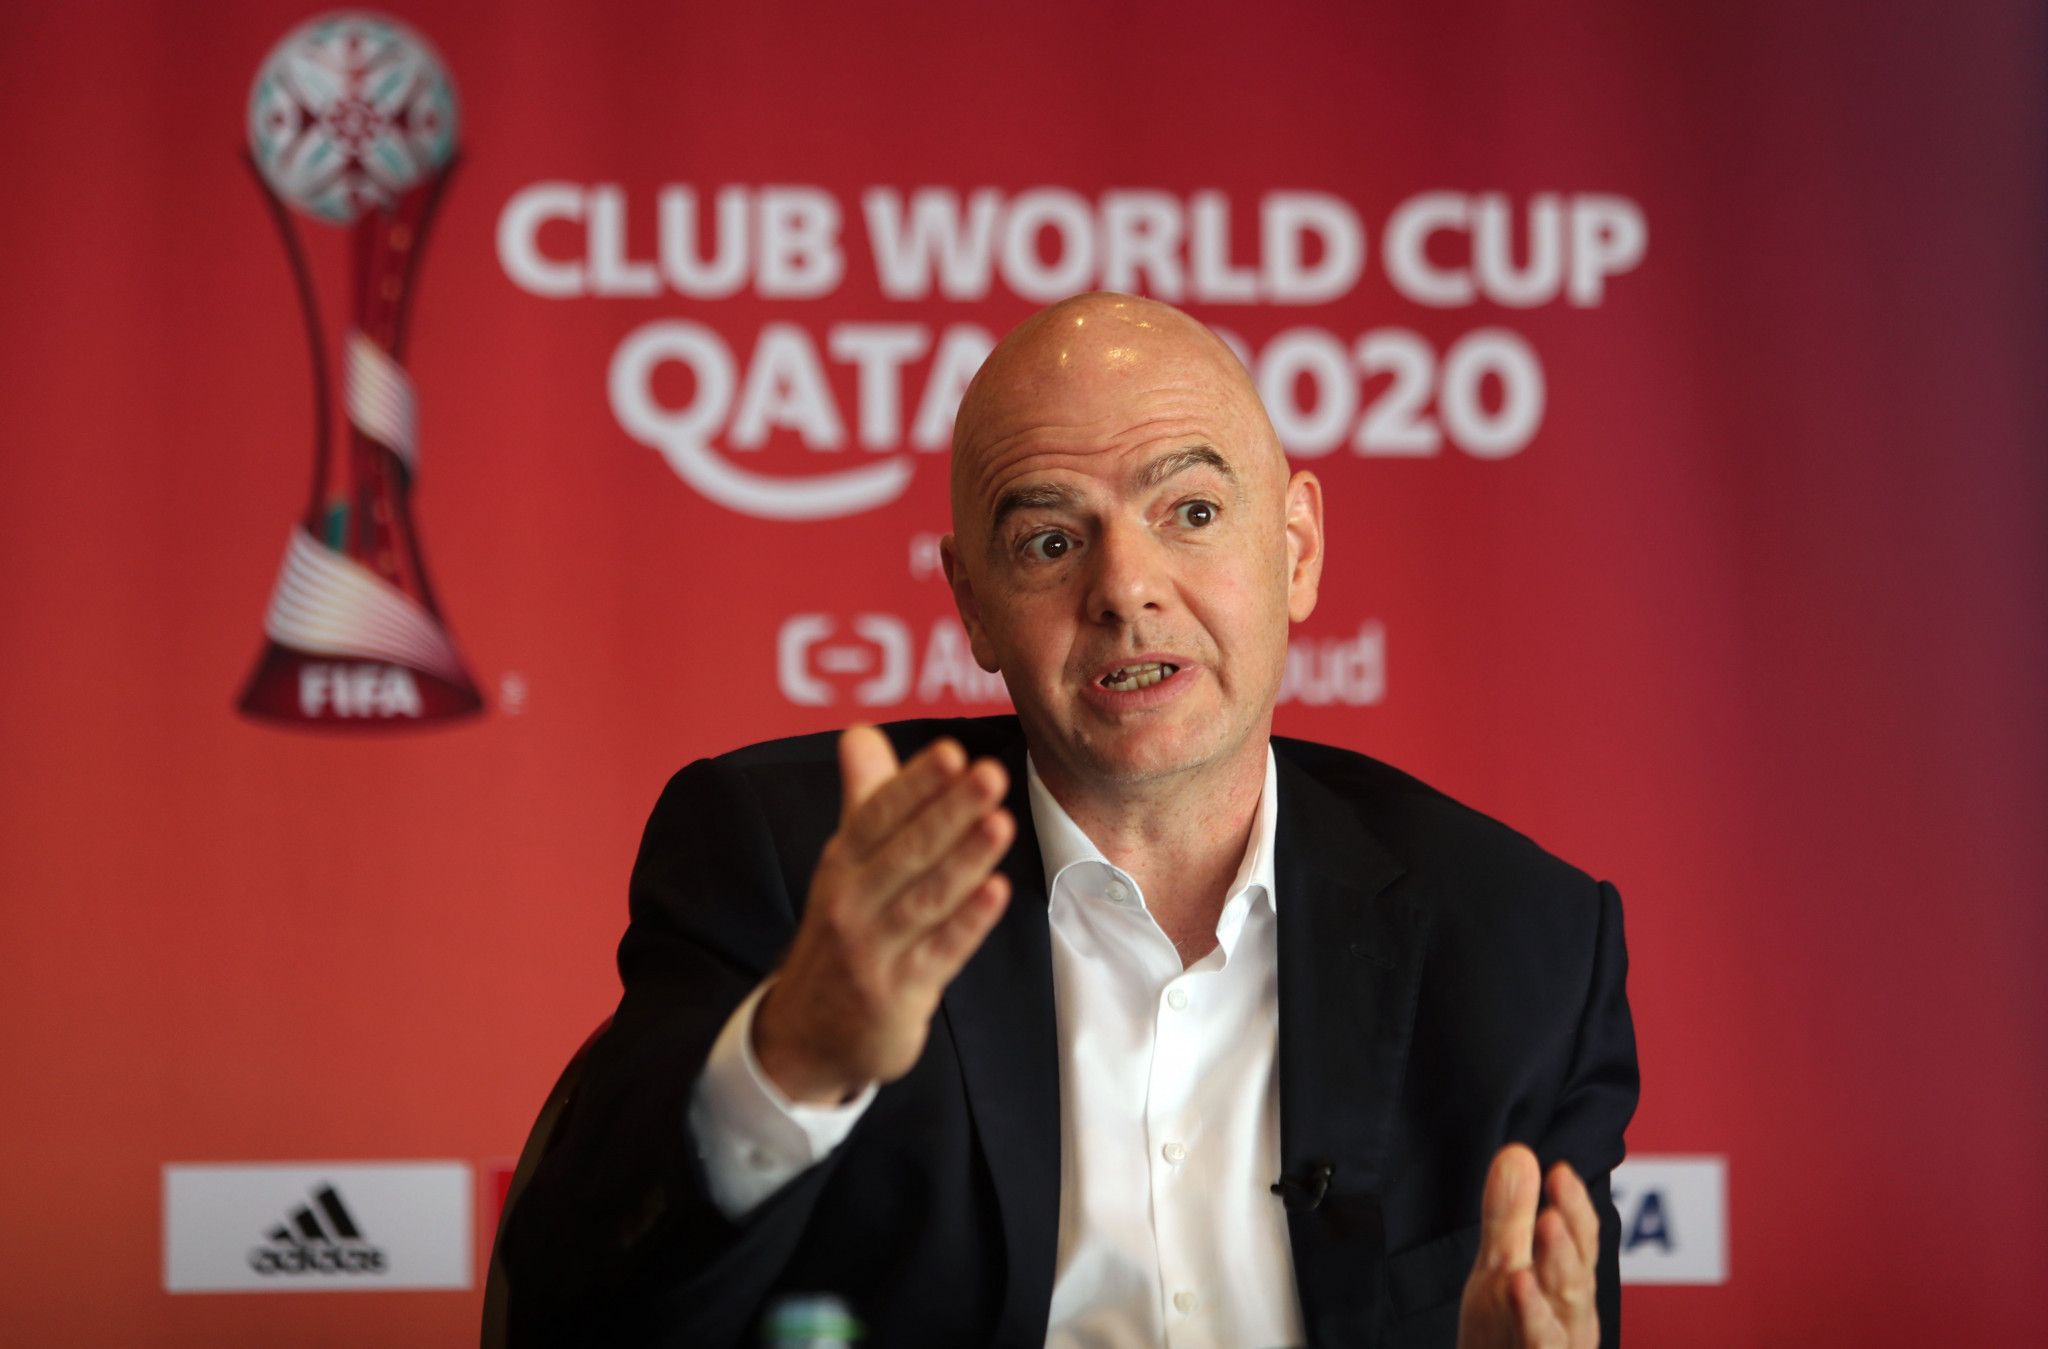 Amnesty International calls on FIFA to urge Qatar to fulfil labour reforms ahead of World Cup